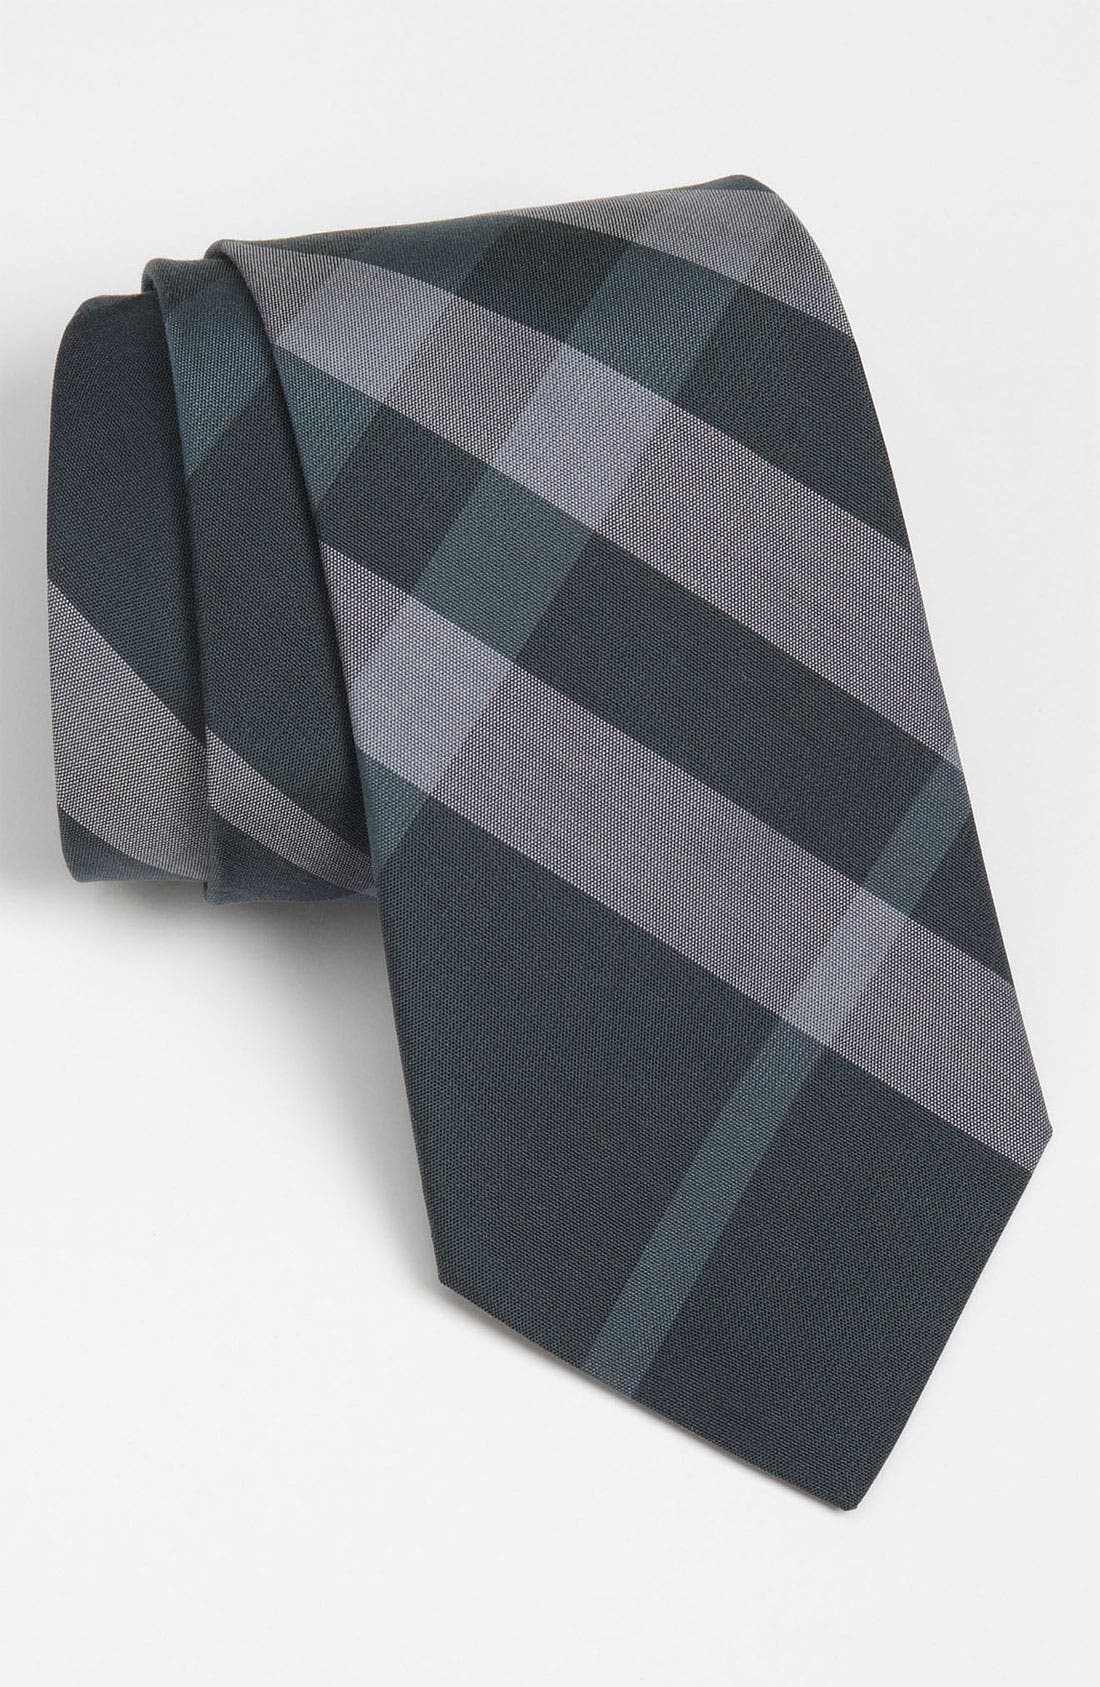 Alternate Image 1 Selected - Burberry London Woven Tie